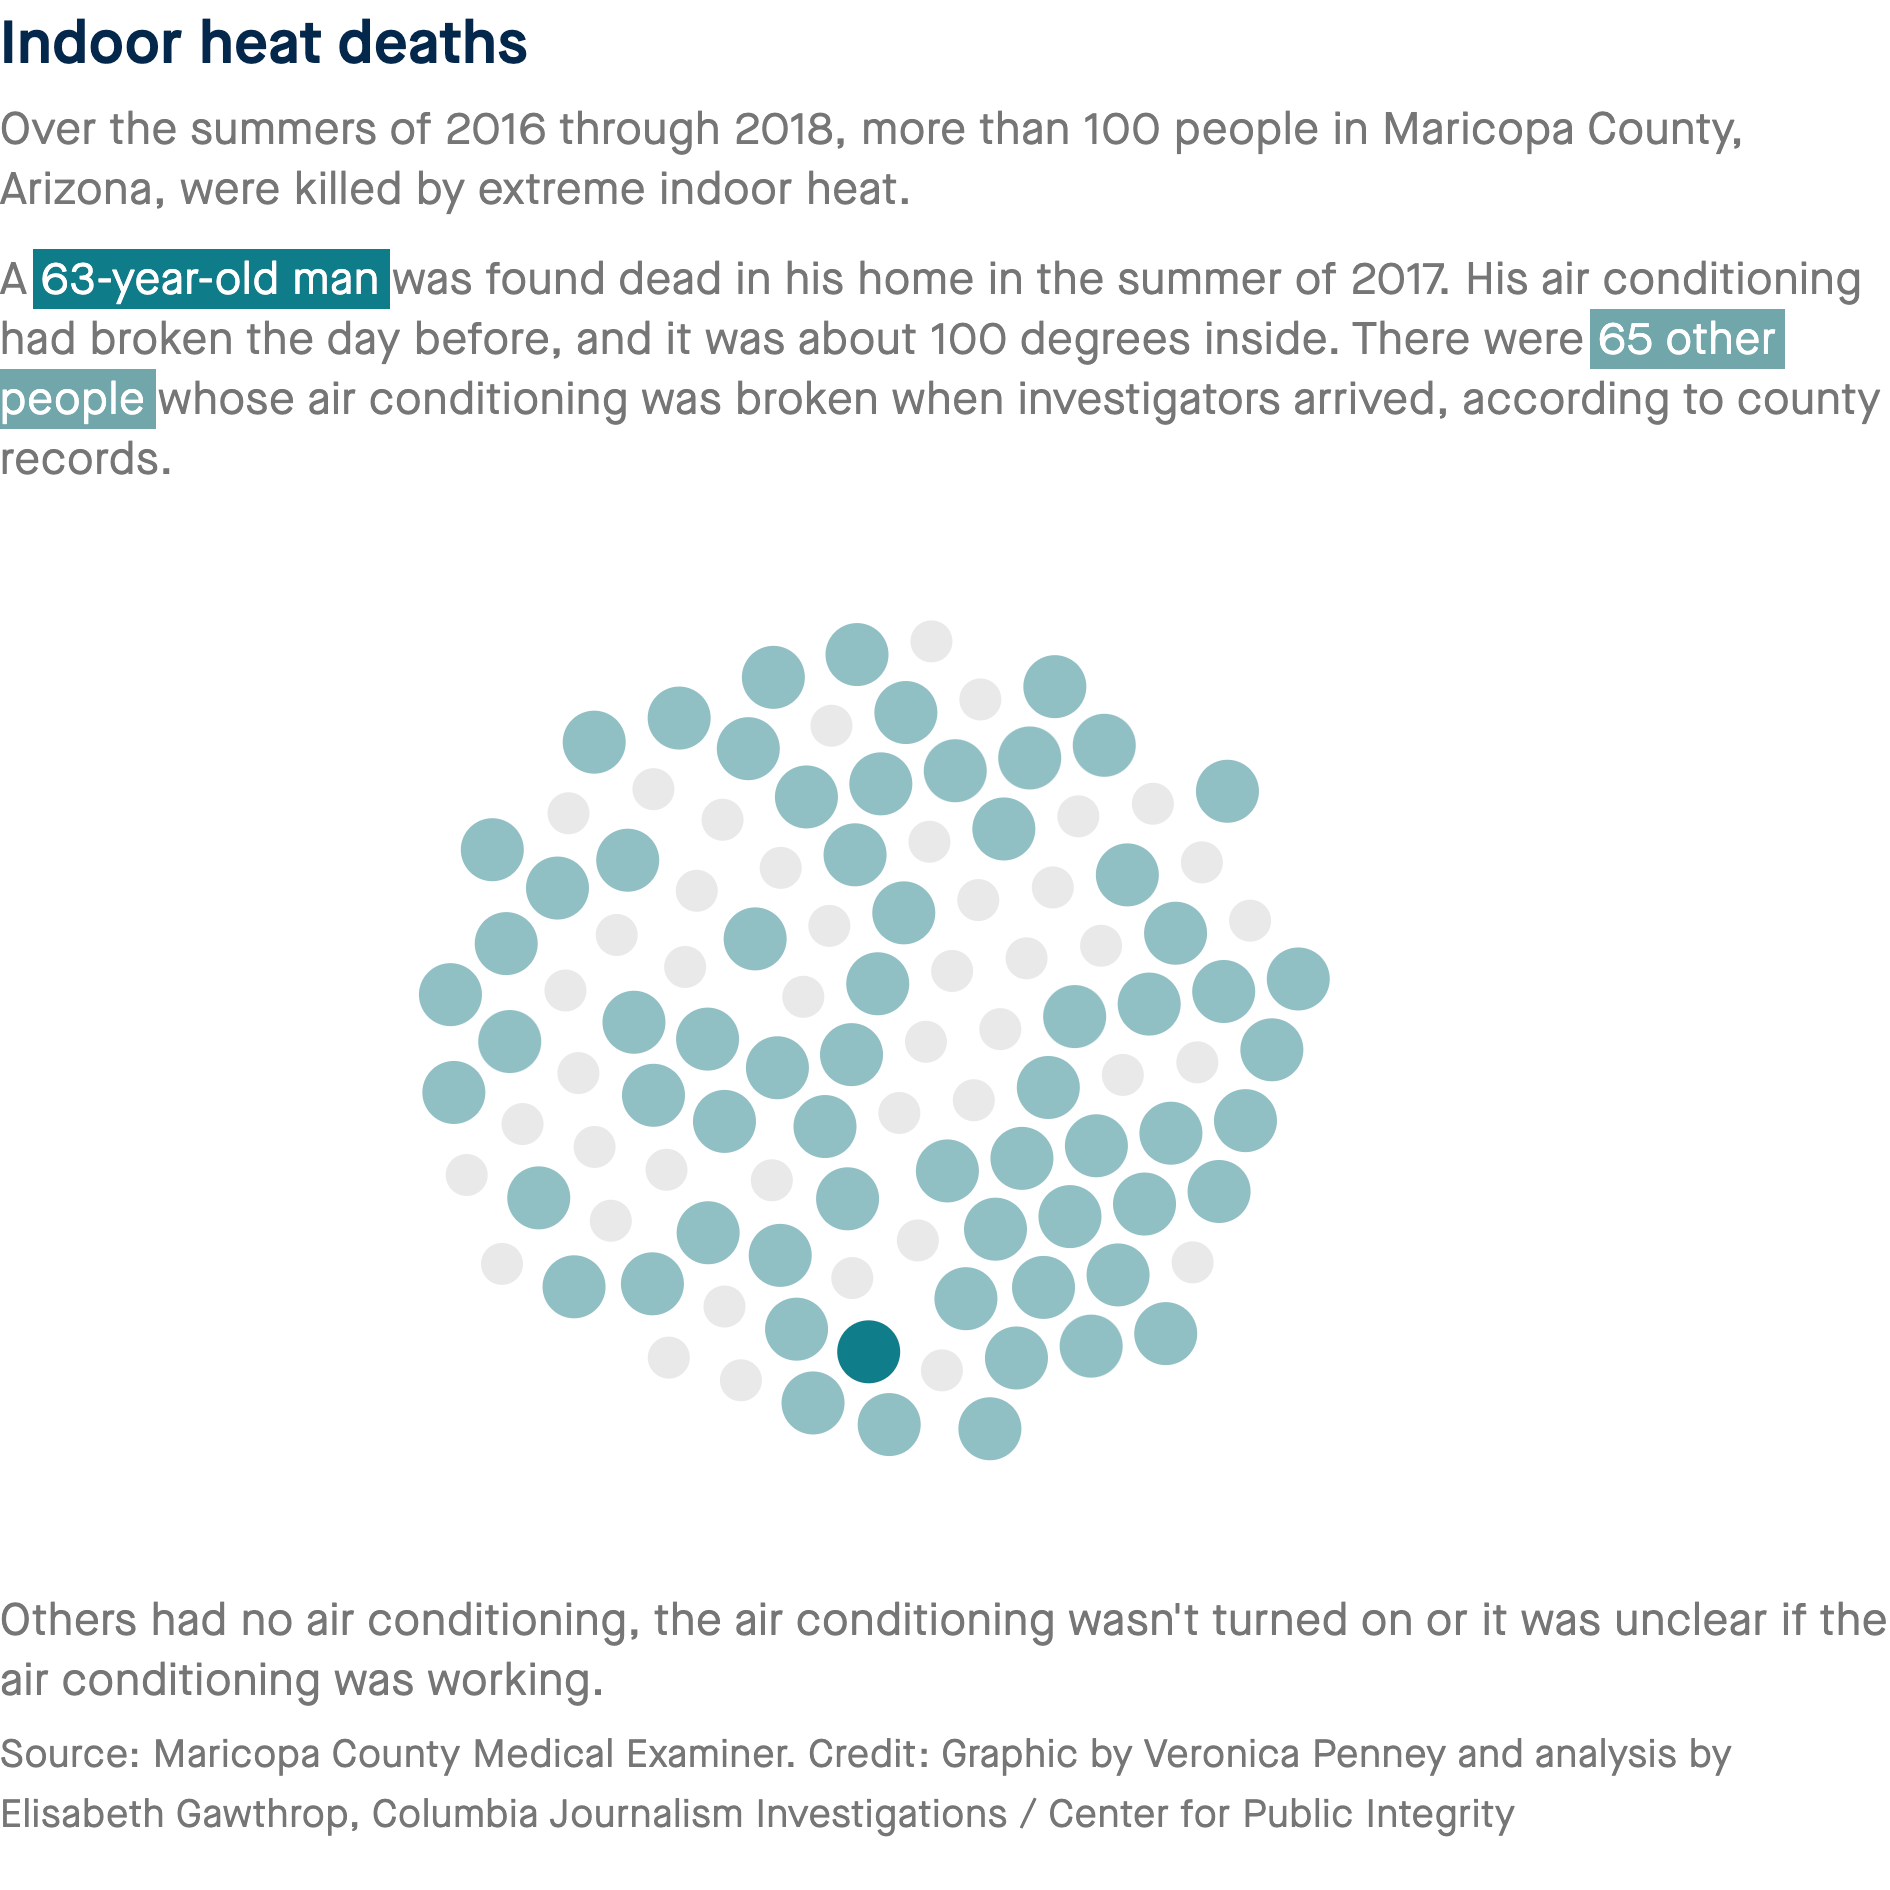 indoor heat deaths graphic from the center for public integrity